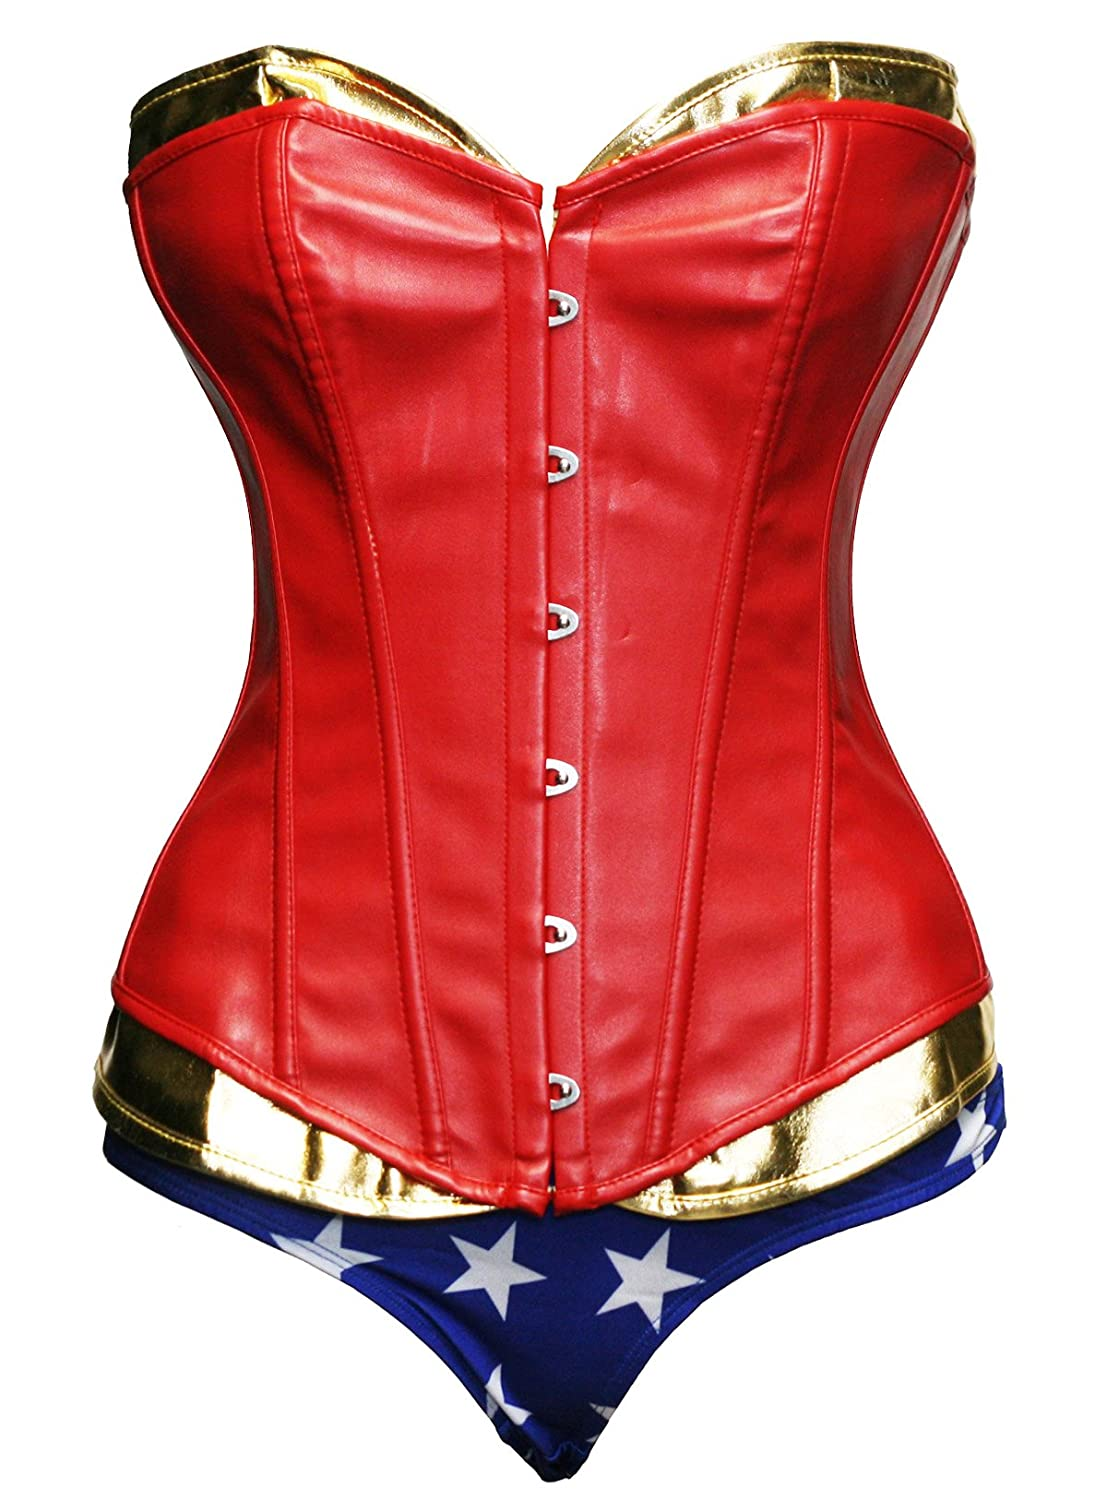 aa5b08575fb Amazon.com  Bslingerie Woman Halloween Costume Overbust Corset with Shorts   Clothing